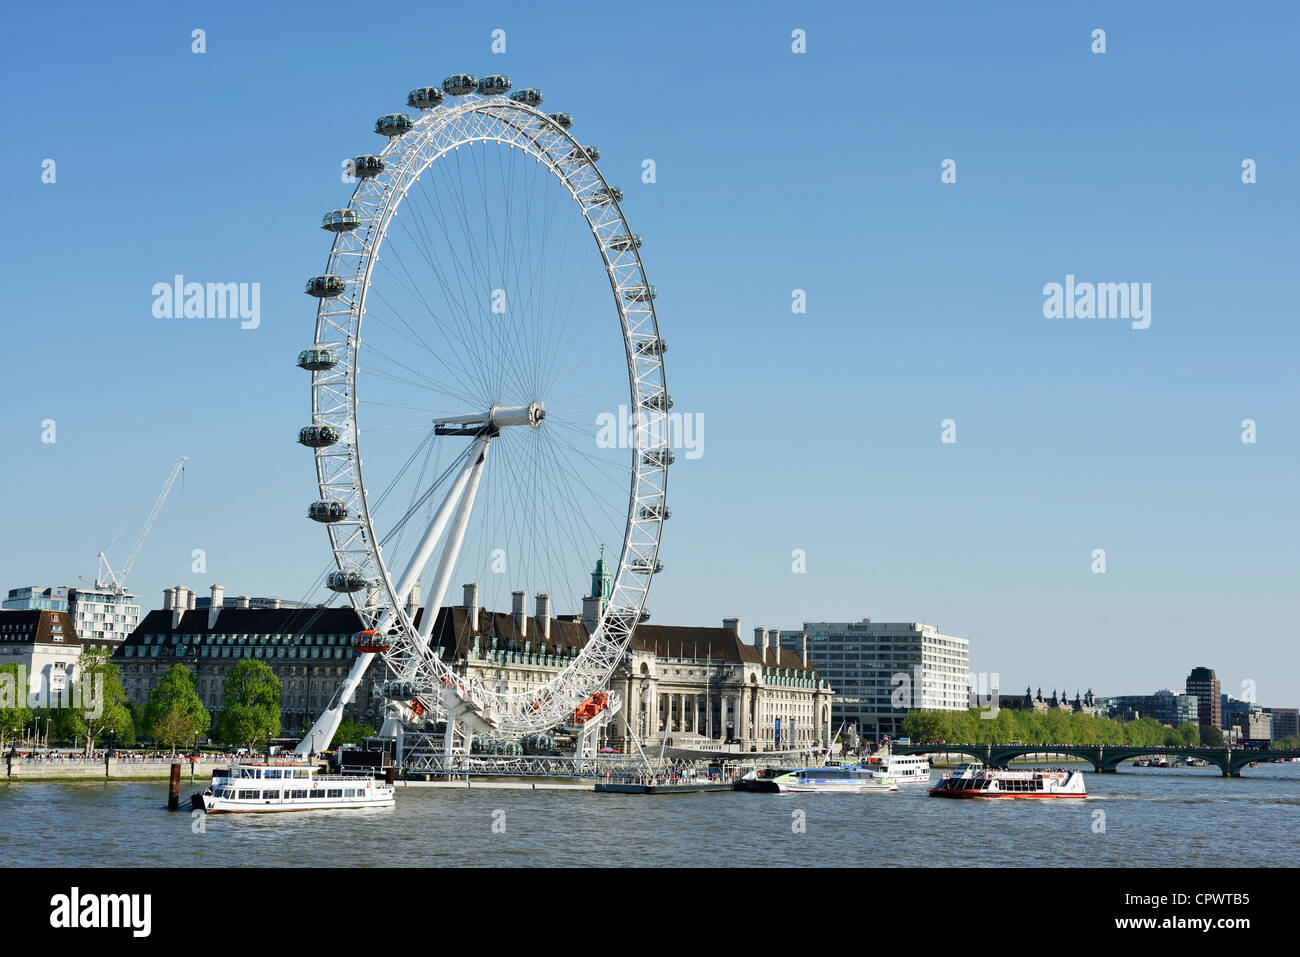 The London Eye seen from Victoria Embankment - Stock Image